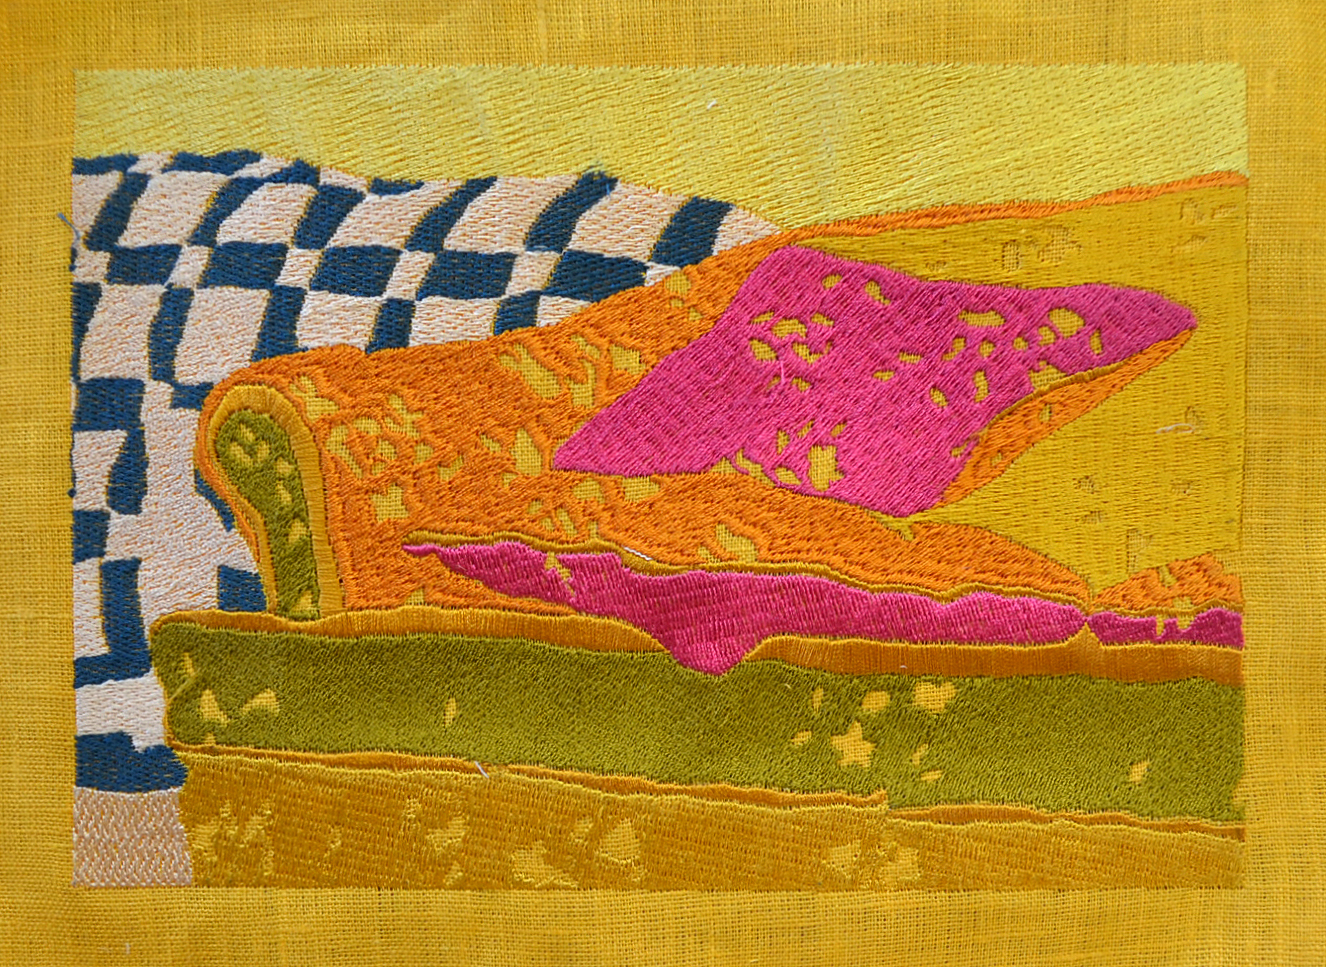 Embroidered Couch no. 6